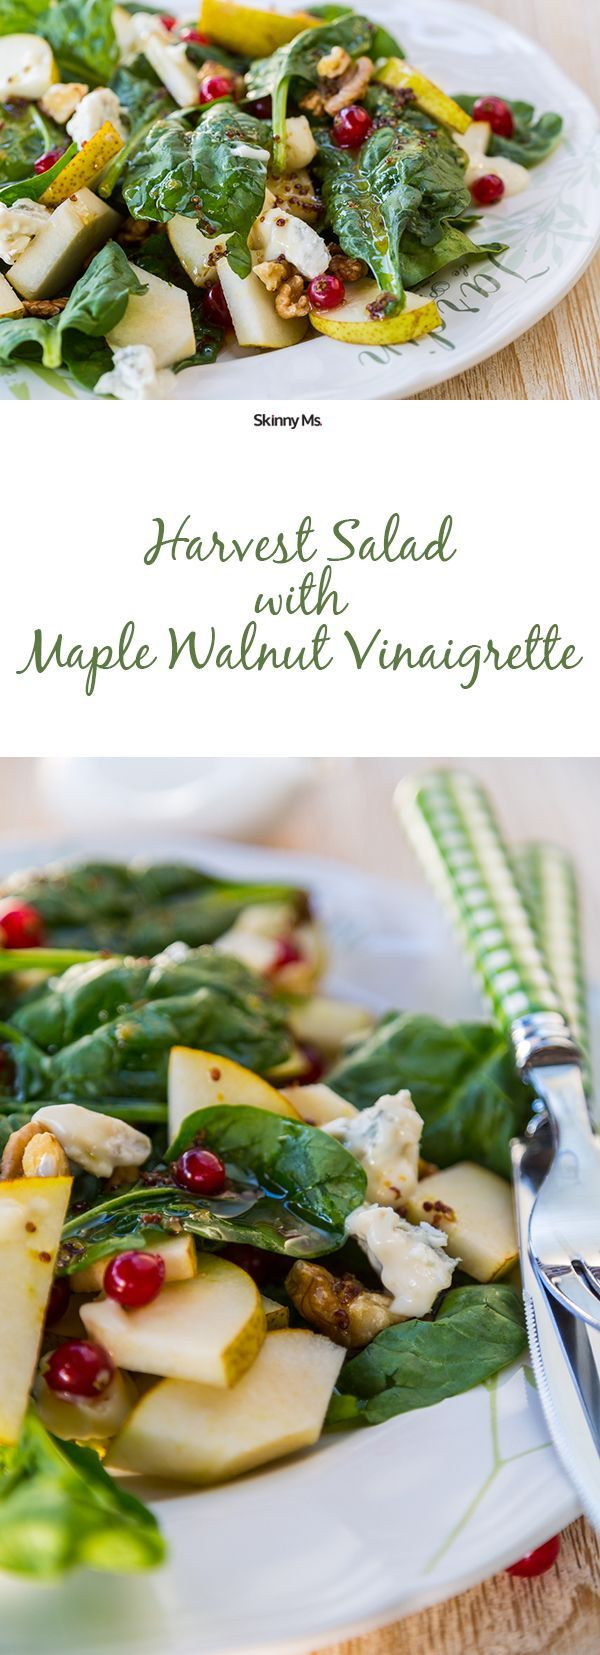 This Harvest Salad with Maple Walnut Vinaigrette has spinach, apples, feta cheese, walnuts, and dried cranberries, all topped with a fall inspired dressing.